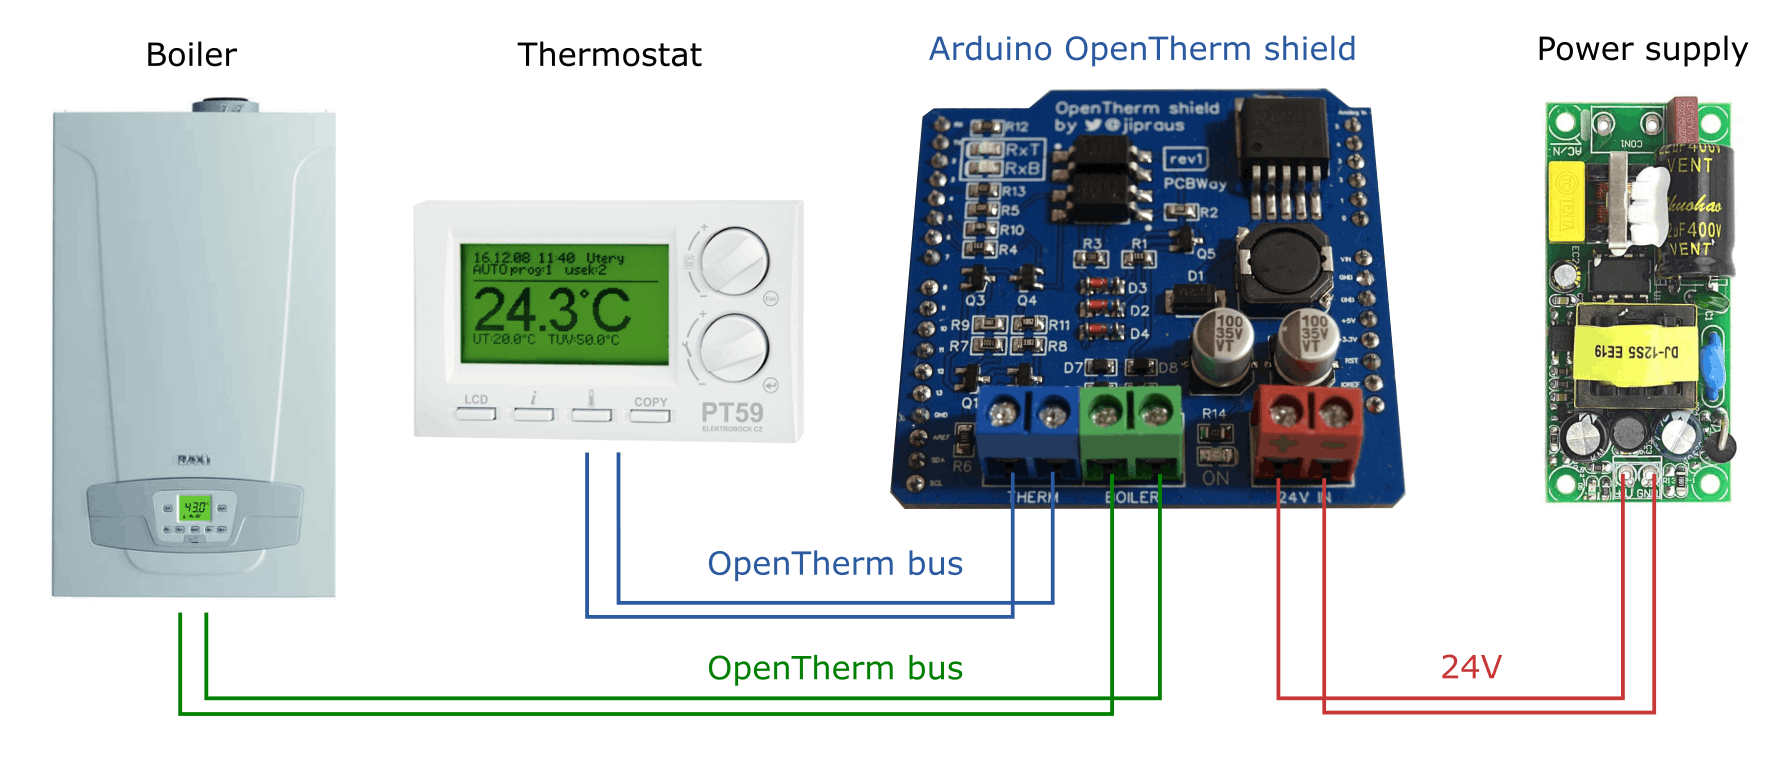 OpenTherm shield as a gateway/regulator